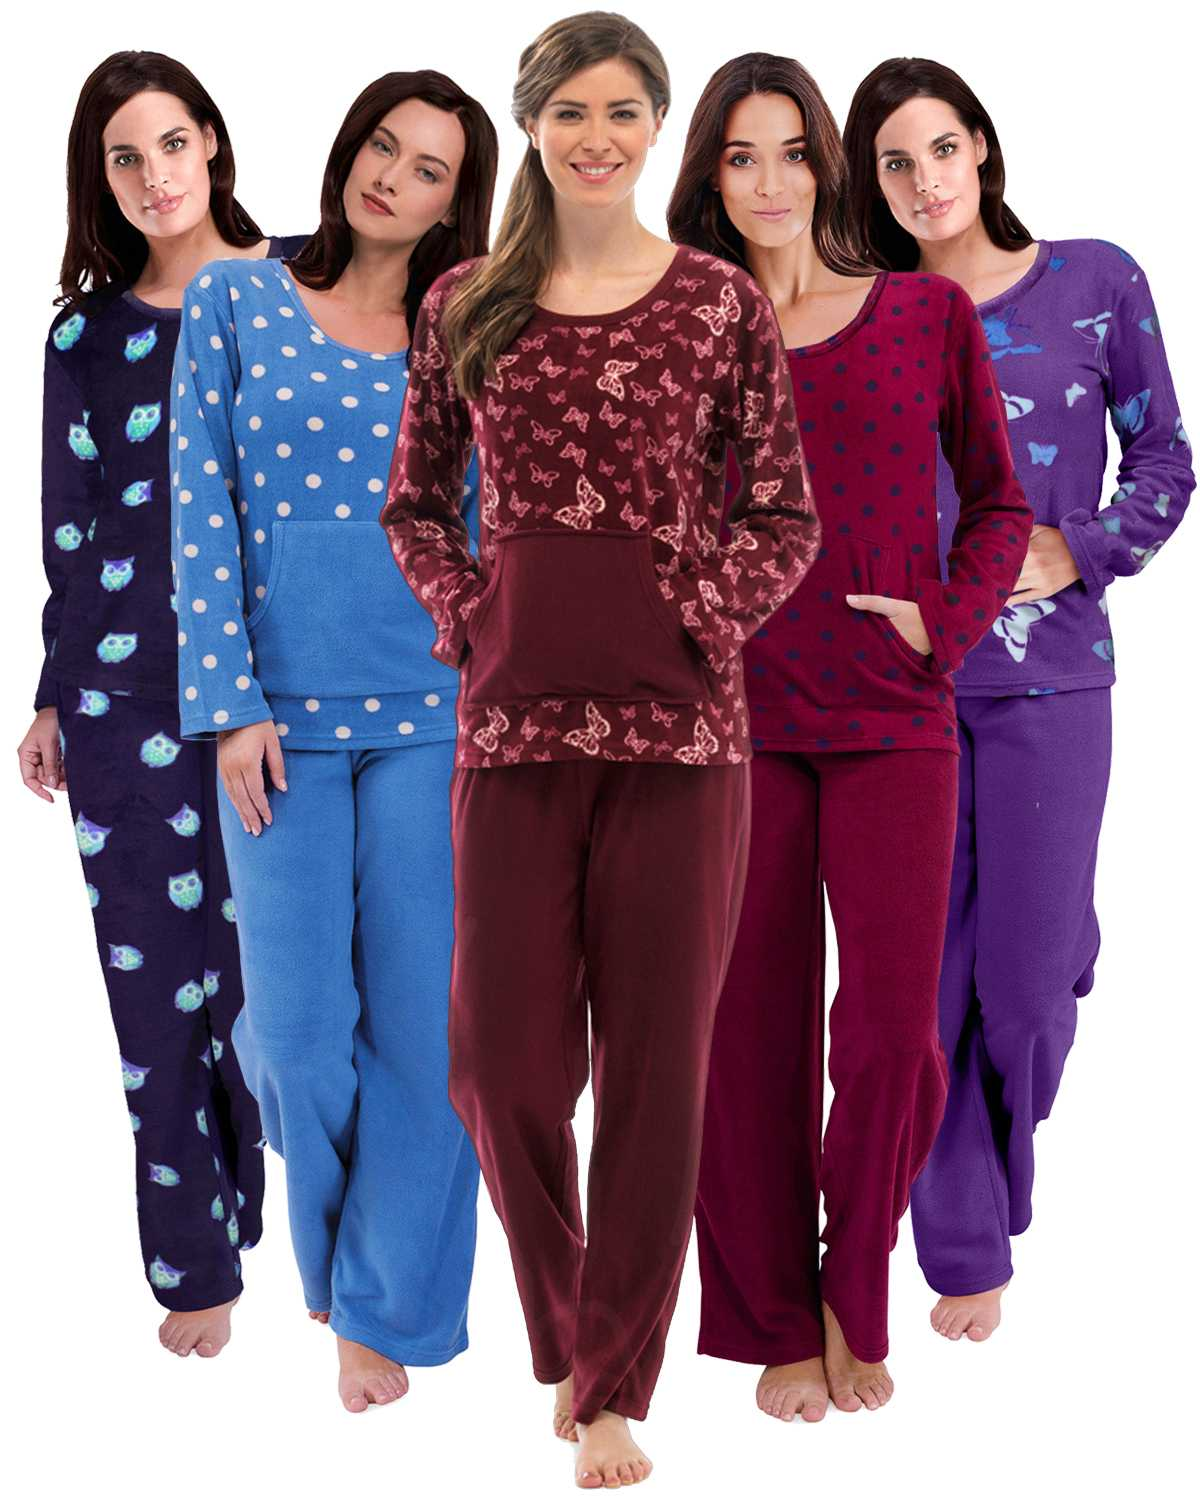 08e56f6f5c Details about Womens Warm Fleece Winter PJ Pyjama Set Night Wear PJ s  Pyjamas Sets Ladies New